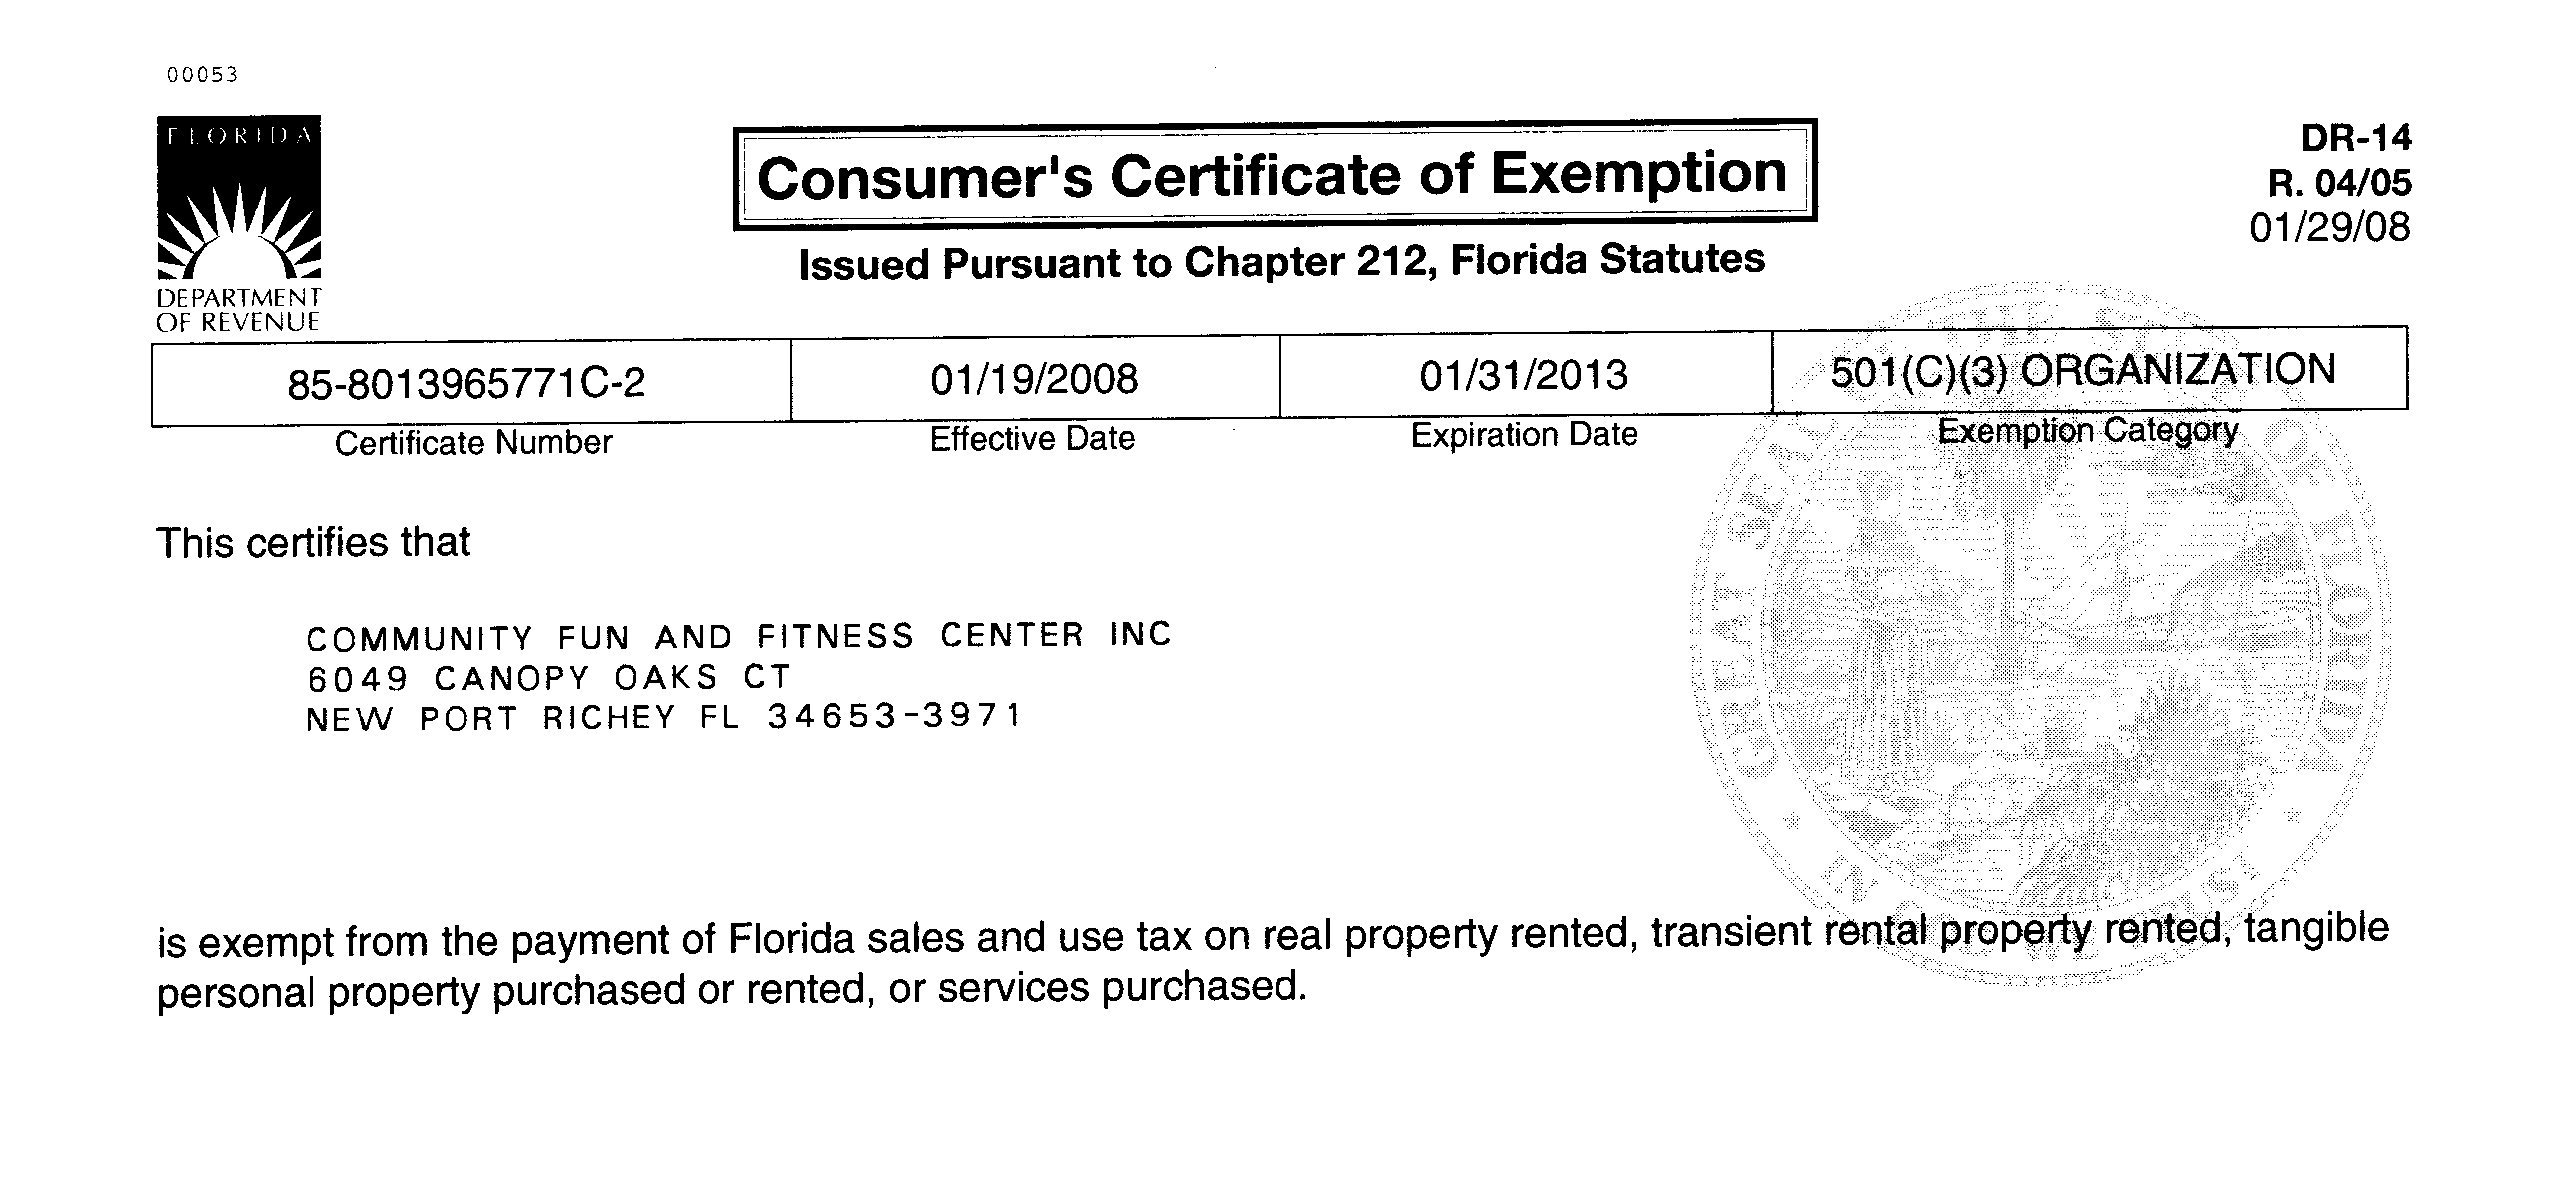 State sales tax state sales tax exemption florida state sales tax exemption florida images 1betcityfo Image collections